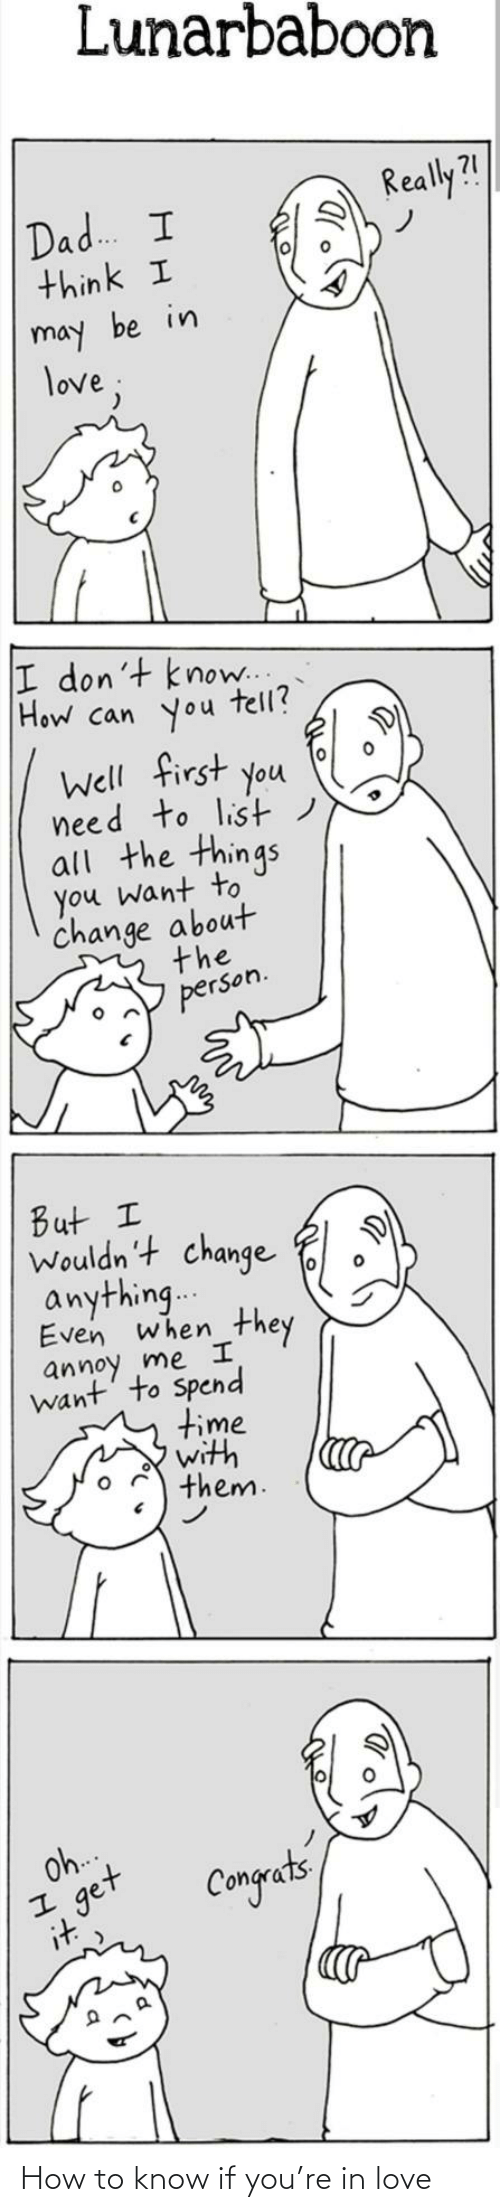 I Want: Lunarbaboon  Really?!  Dad. I  think I  may be in  love;  I don't know..  How can you  tell?  Well first you  need to list)  all the things  you want to  change about  the  person.  But I  Wouldn't change  anything..  Even when  they  annoy me I  want' to Spend  time  with  them.  Oh.  get  it  Congets How to know if you're in love